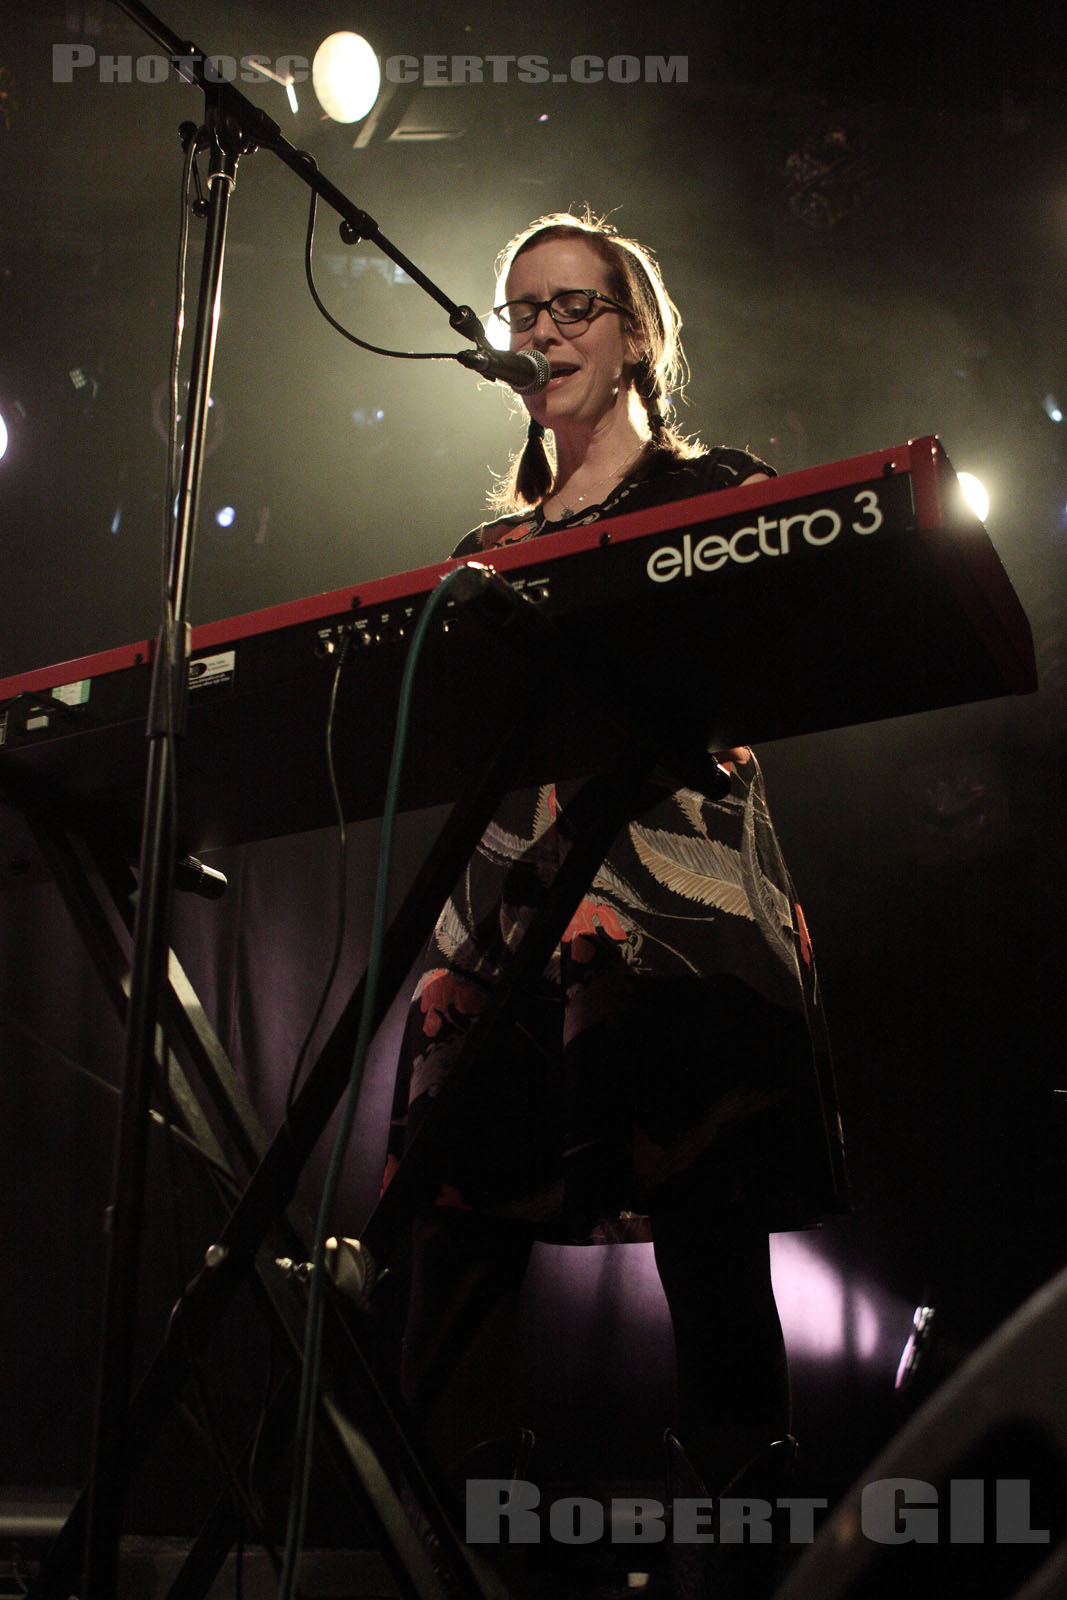 LAURA VEIRS AND THE HALL OF FLAMES - 2011-02-20 - PARIS - La Maroquinerie